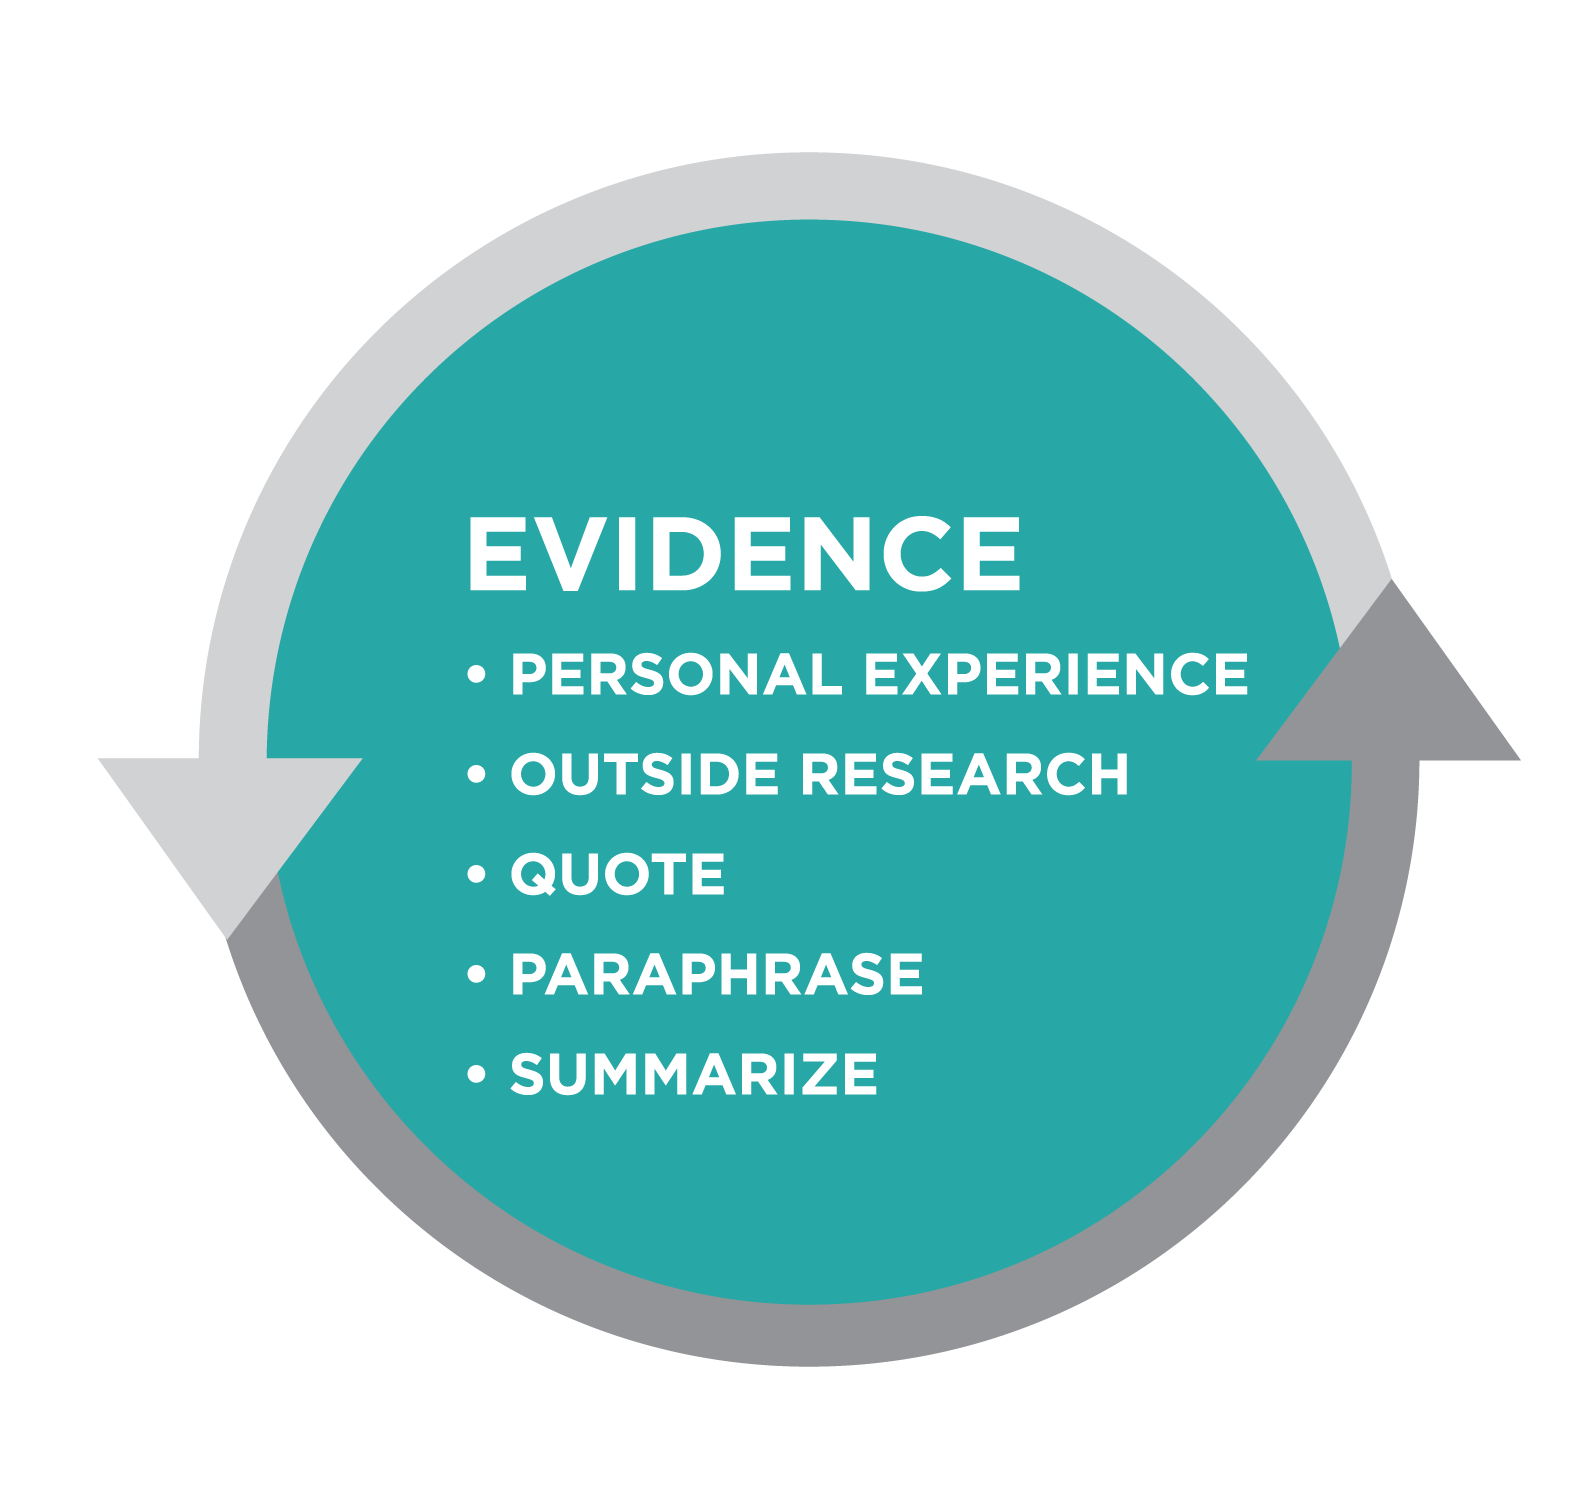 Graphic titled Evidence. Bullet list: Personal Experience, Outside Research, Quote, Paraphrase, Summarize. All is in a teal circle bordered by gray arrows.